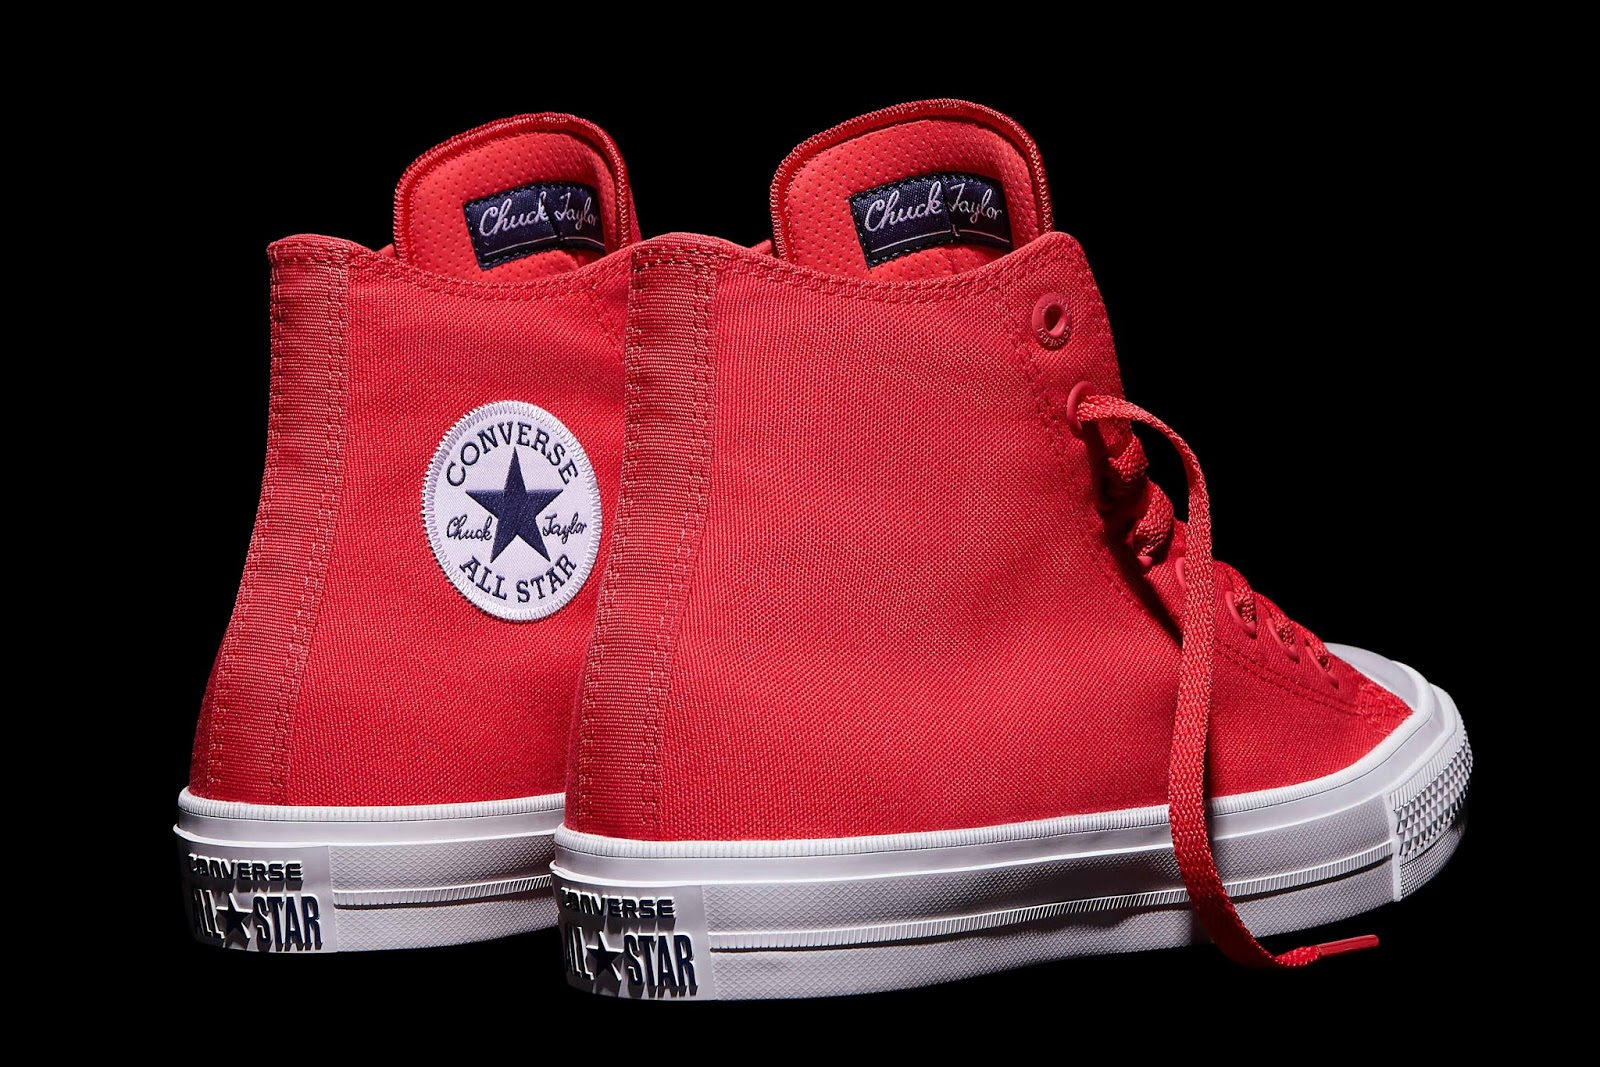 bc5674cc8b54 Converse Chuck Taylor All Star II Neon is available in green gecko and red  colors for only Php 3